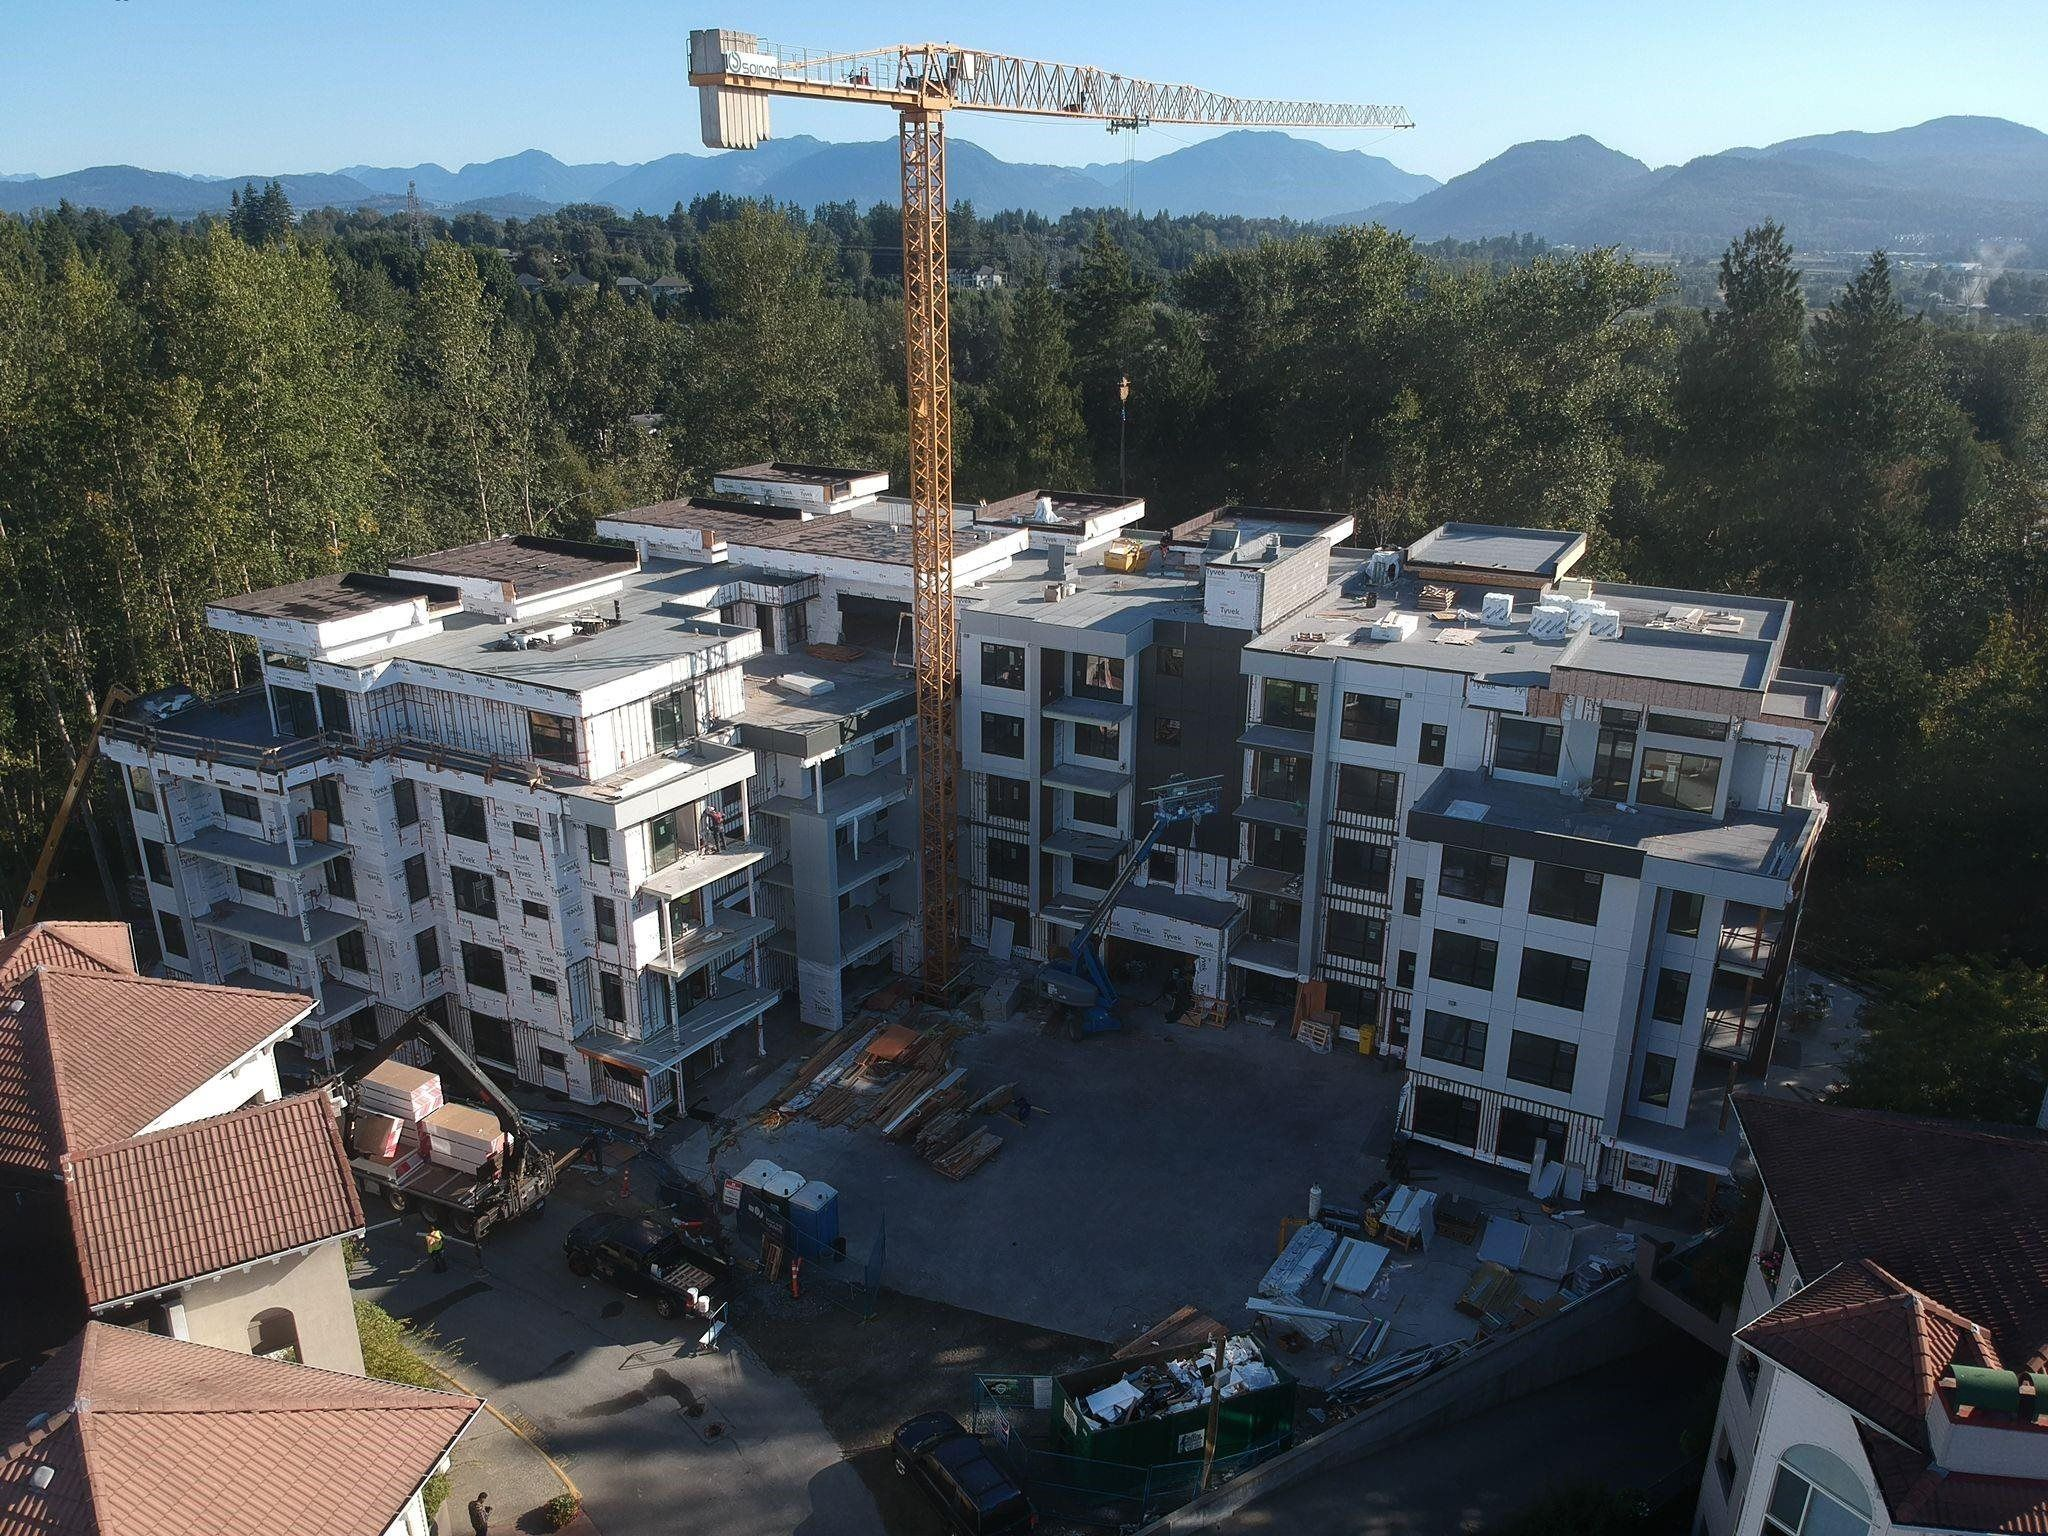 """Main Photo: 411 3182 GLADWIN ROAD in Abbotsford: Central Abbotsford Condo for sale in """"Regency Park"""" : MLS®# R2618201"""